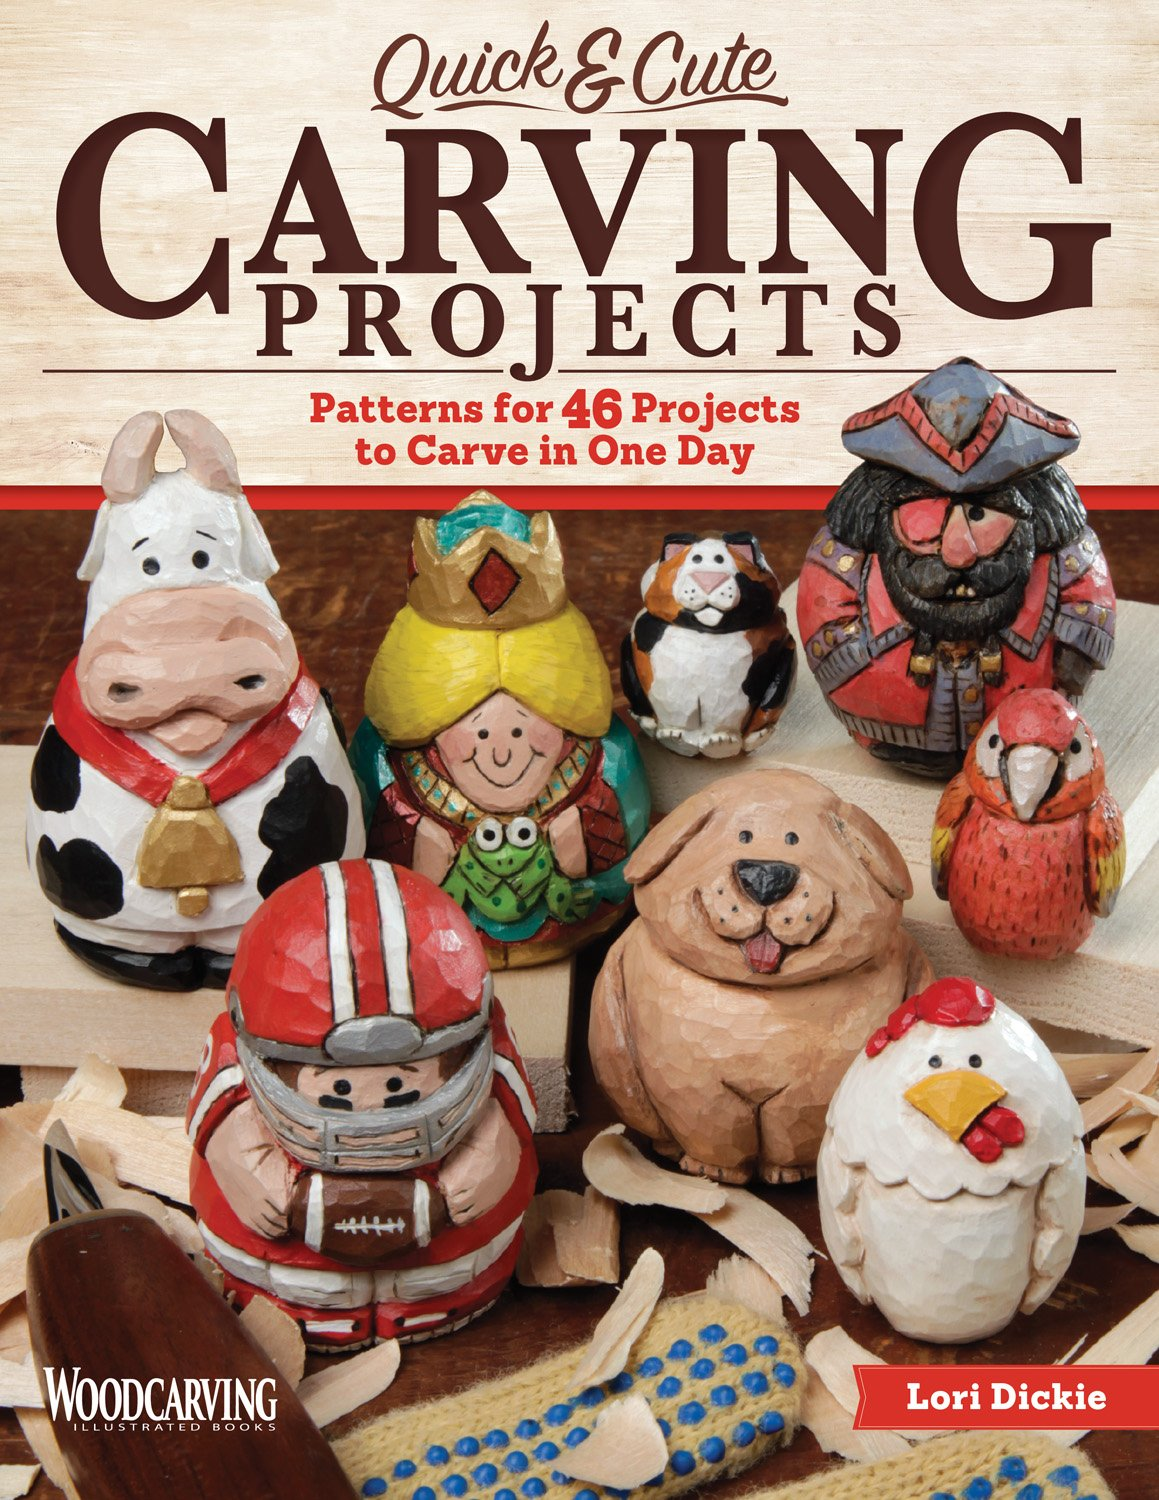 Quick & cute carving projects: patterns for 46 projects to carve in